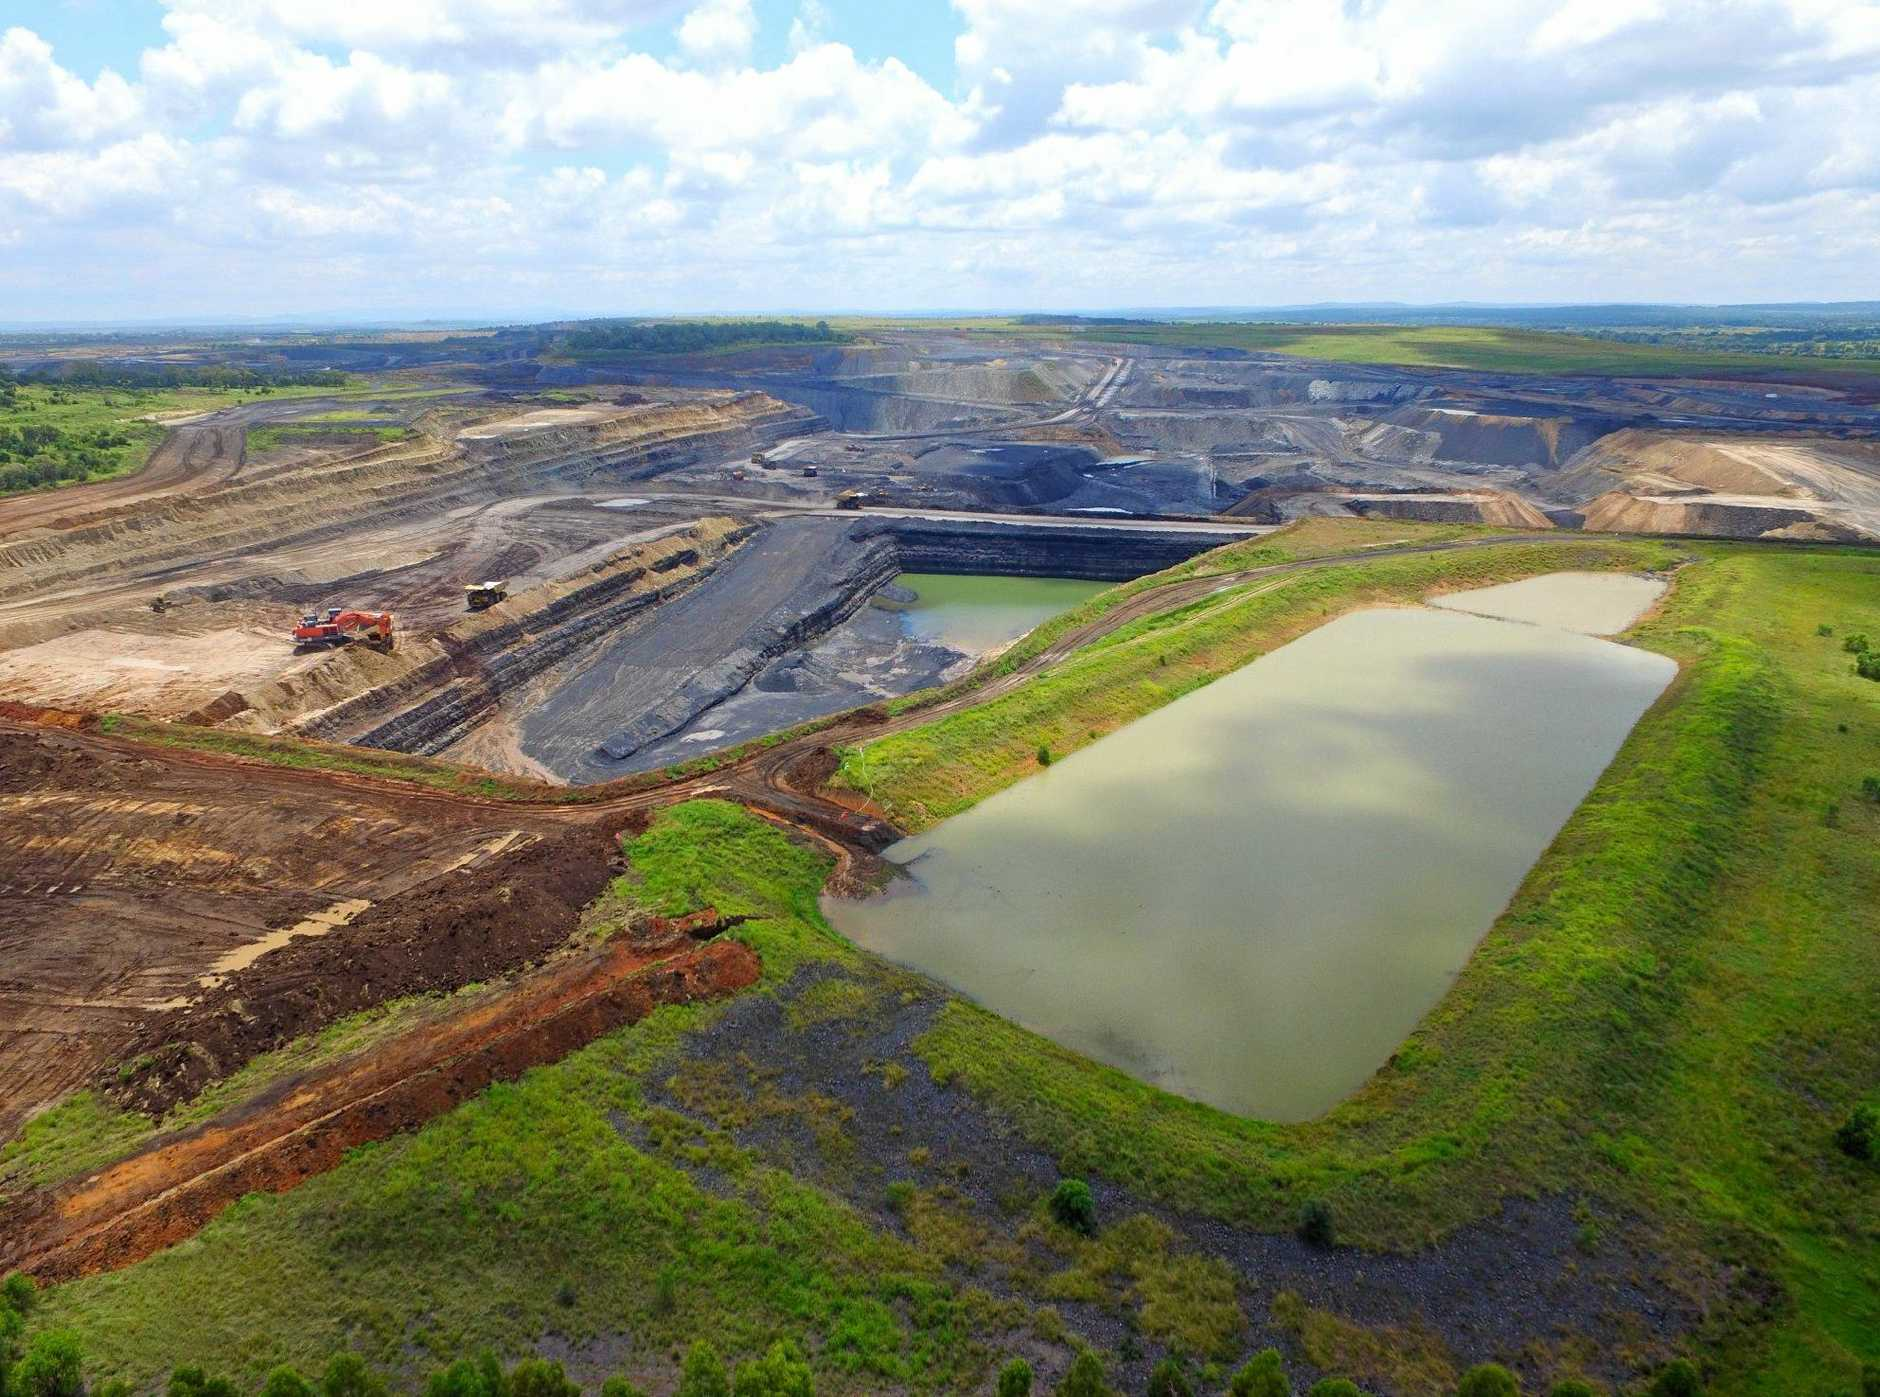 New Hope has released a report detailing the economic cost if New Acland mine is not expanded.